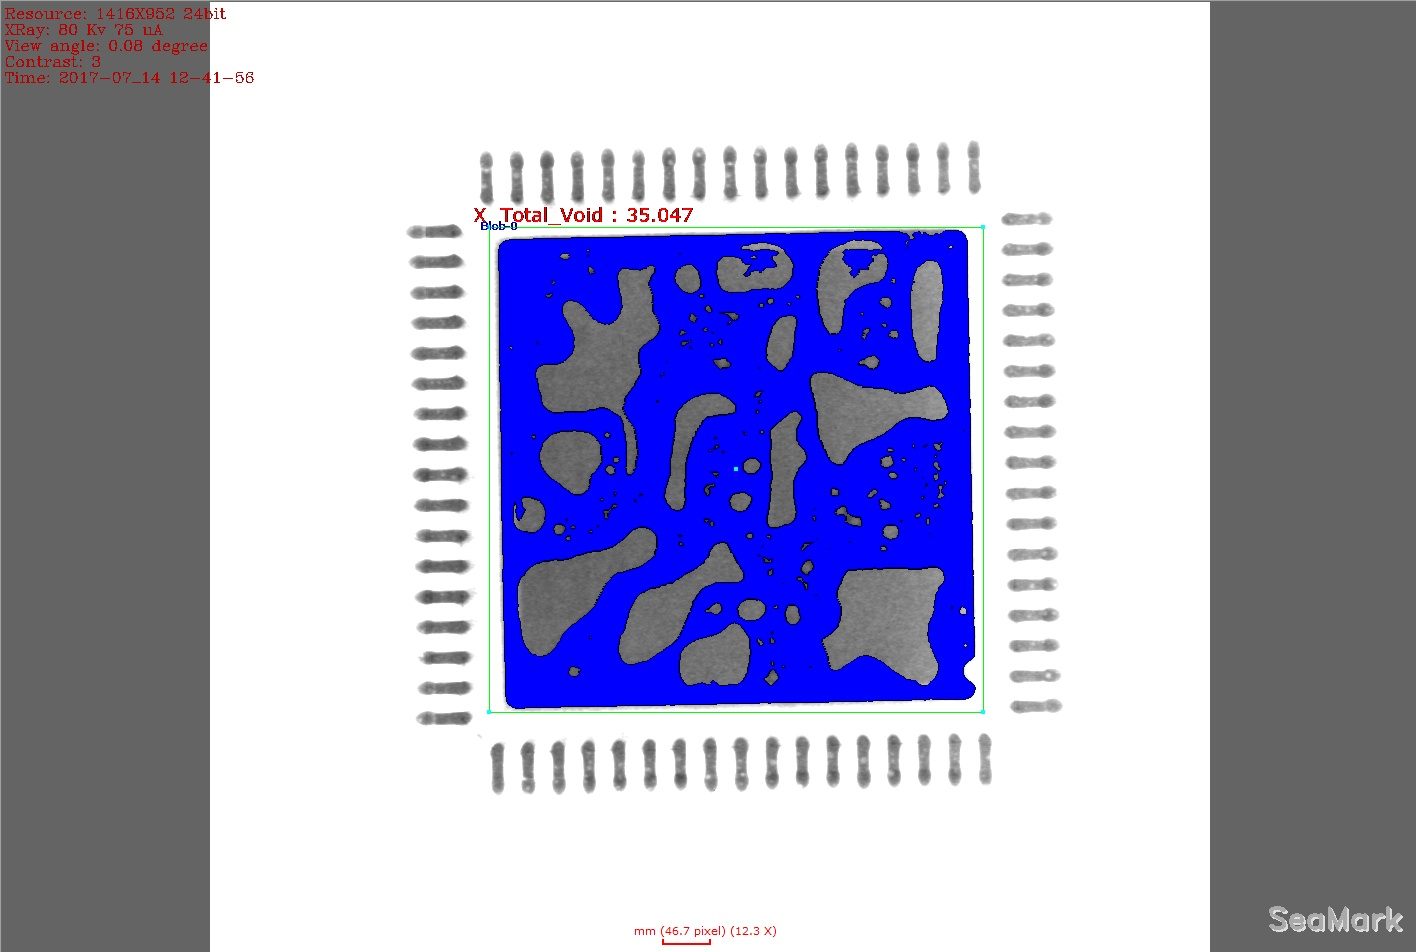 ic pcb bga x ray imaging